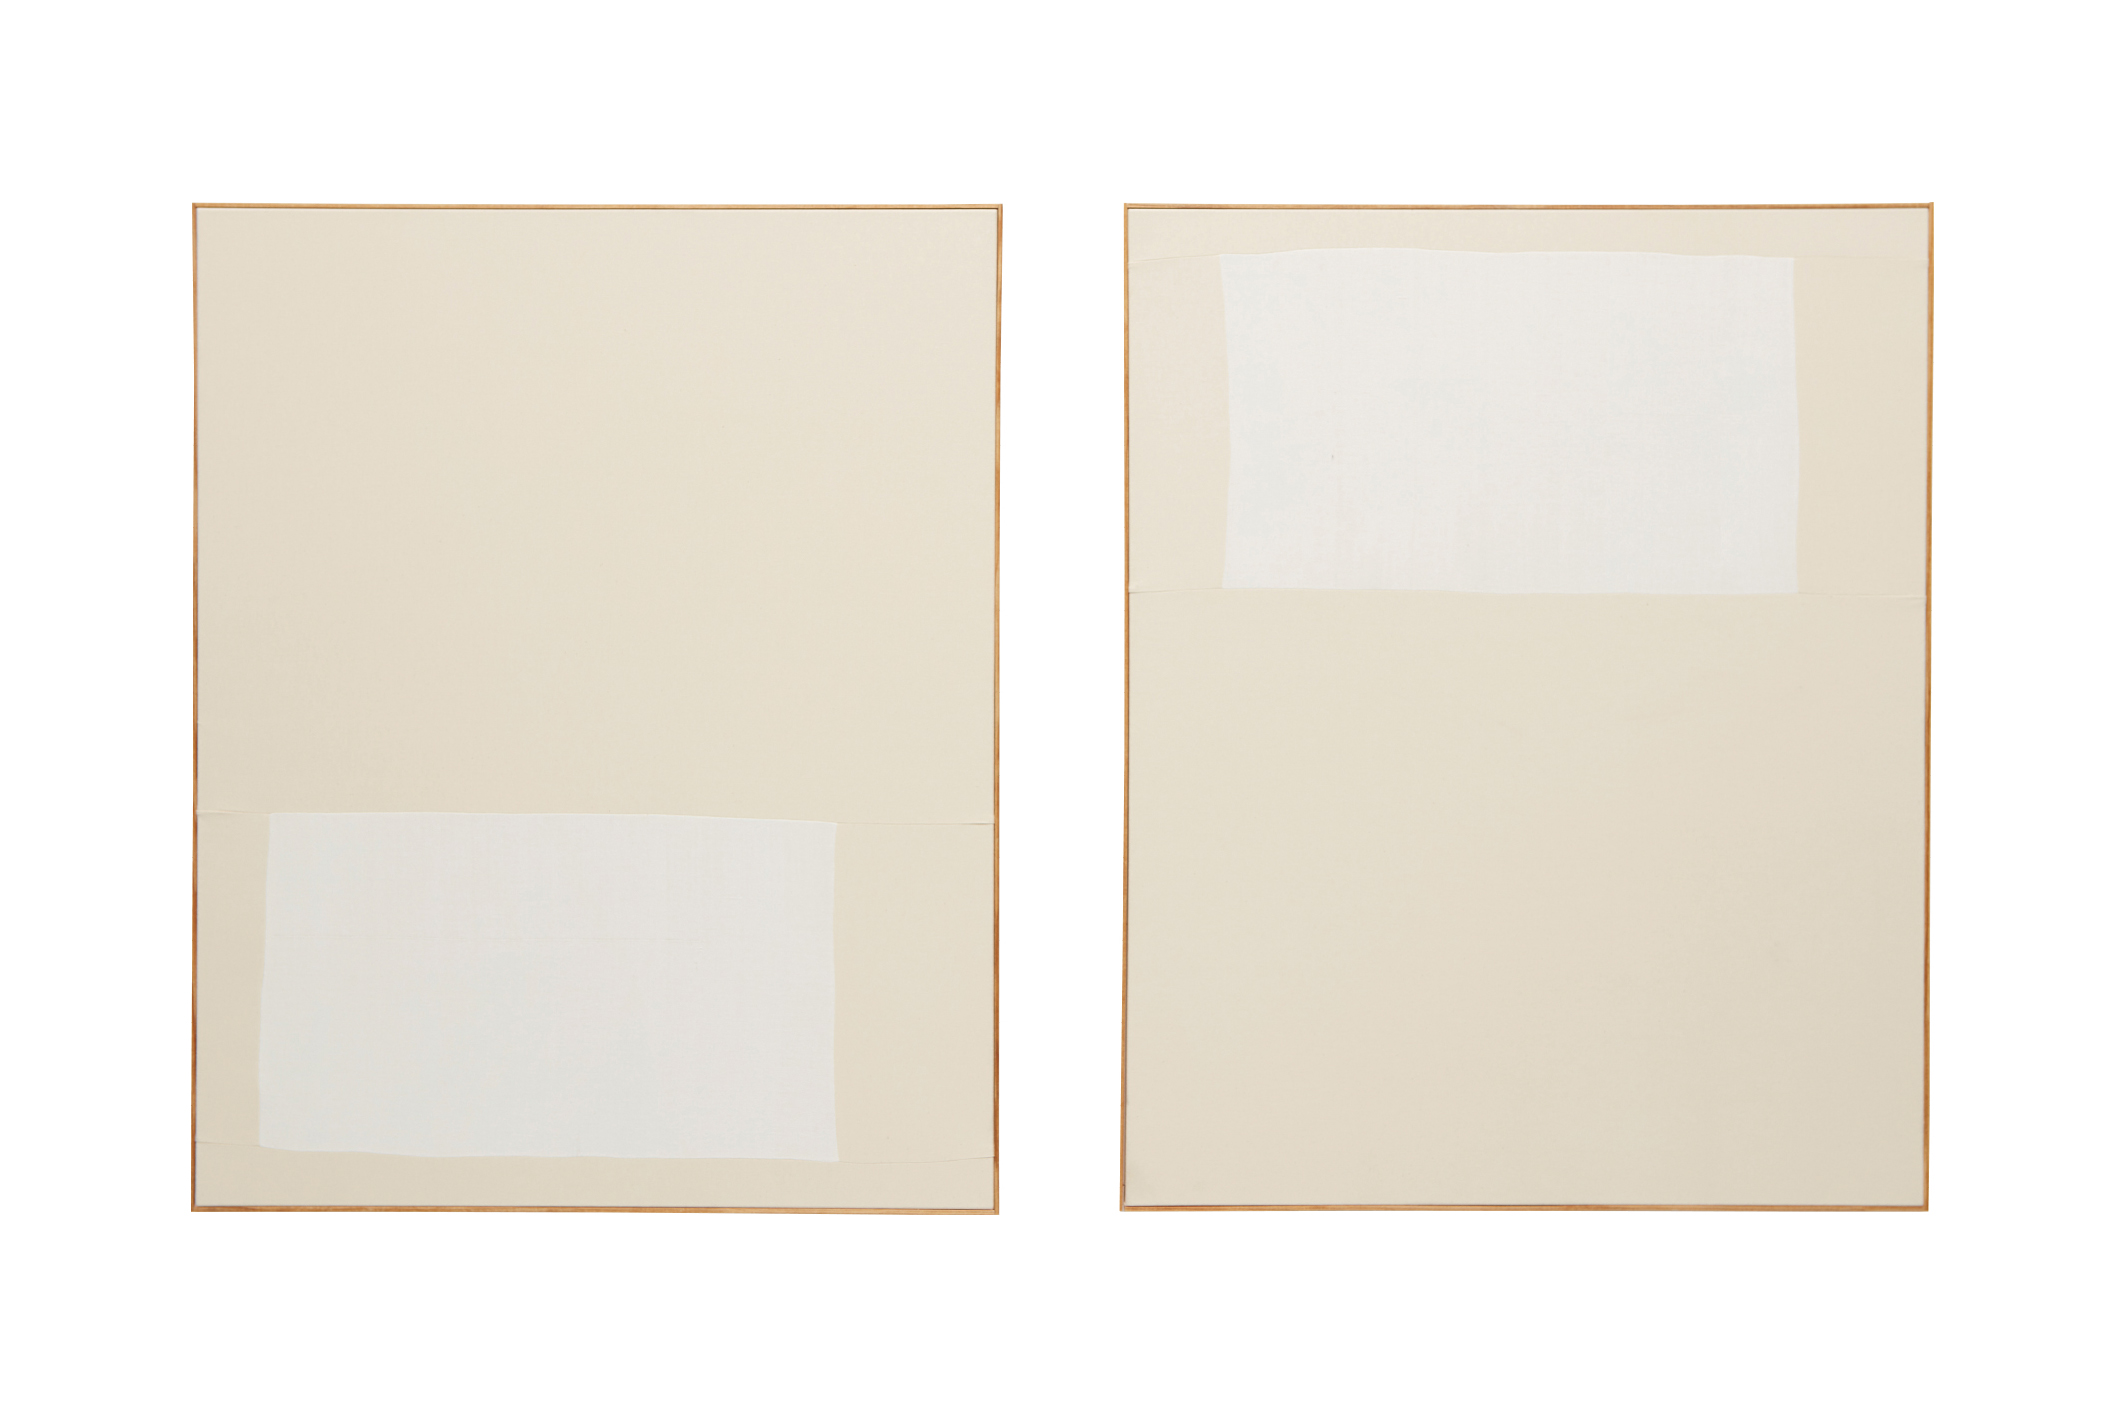 ETHAN COOK  Diptych, two works: (i) Untitled; (ii) Untitled  2013  Hand woven cotton canvas and canvas, in artist's frame  each 128.3 x 102.9 cm